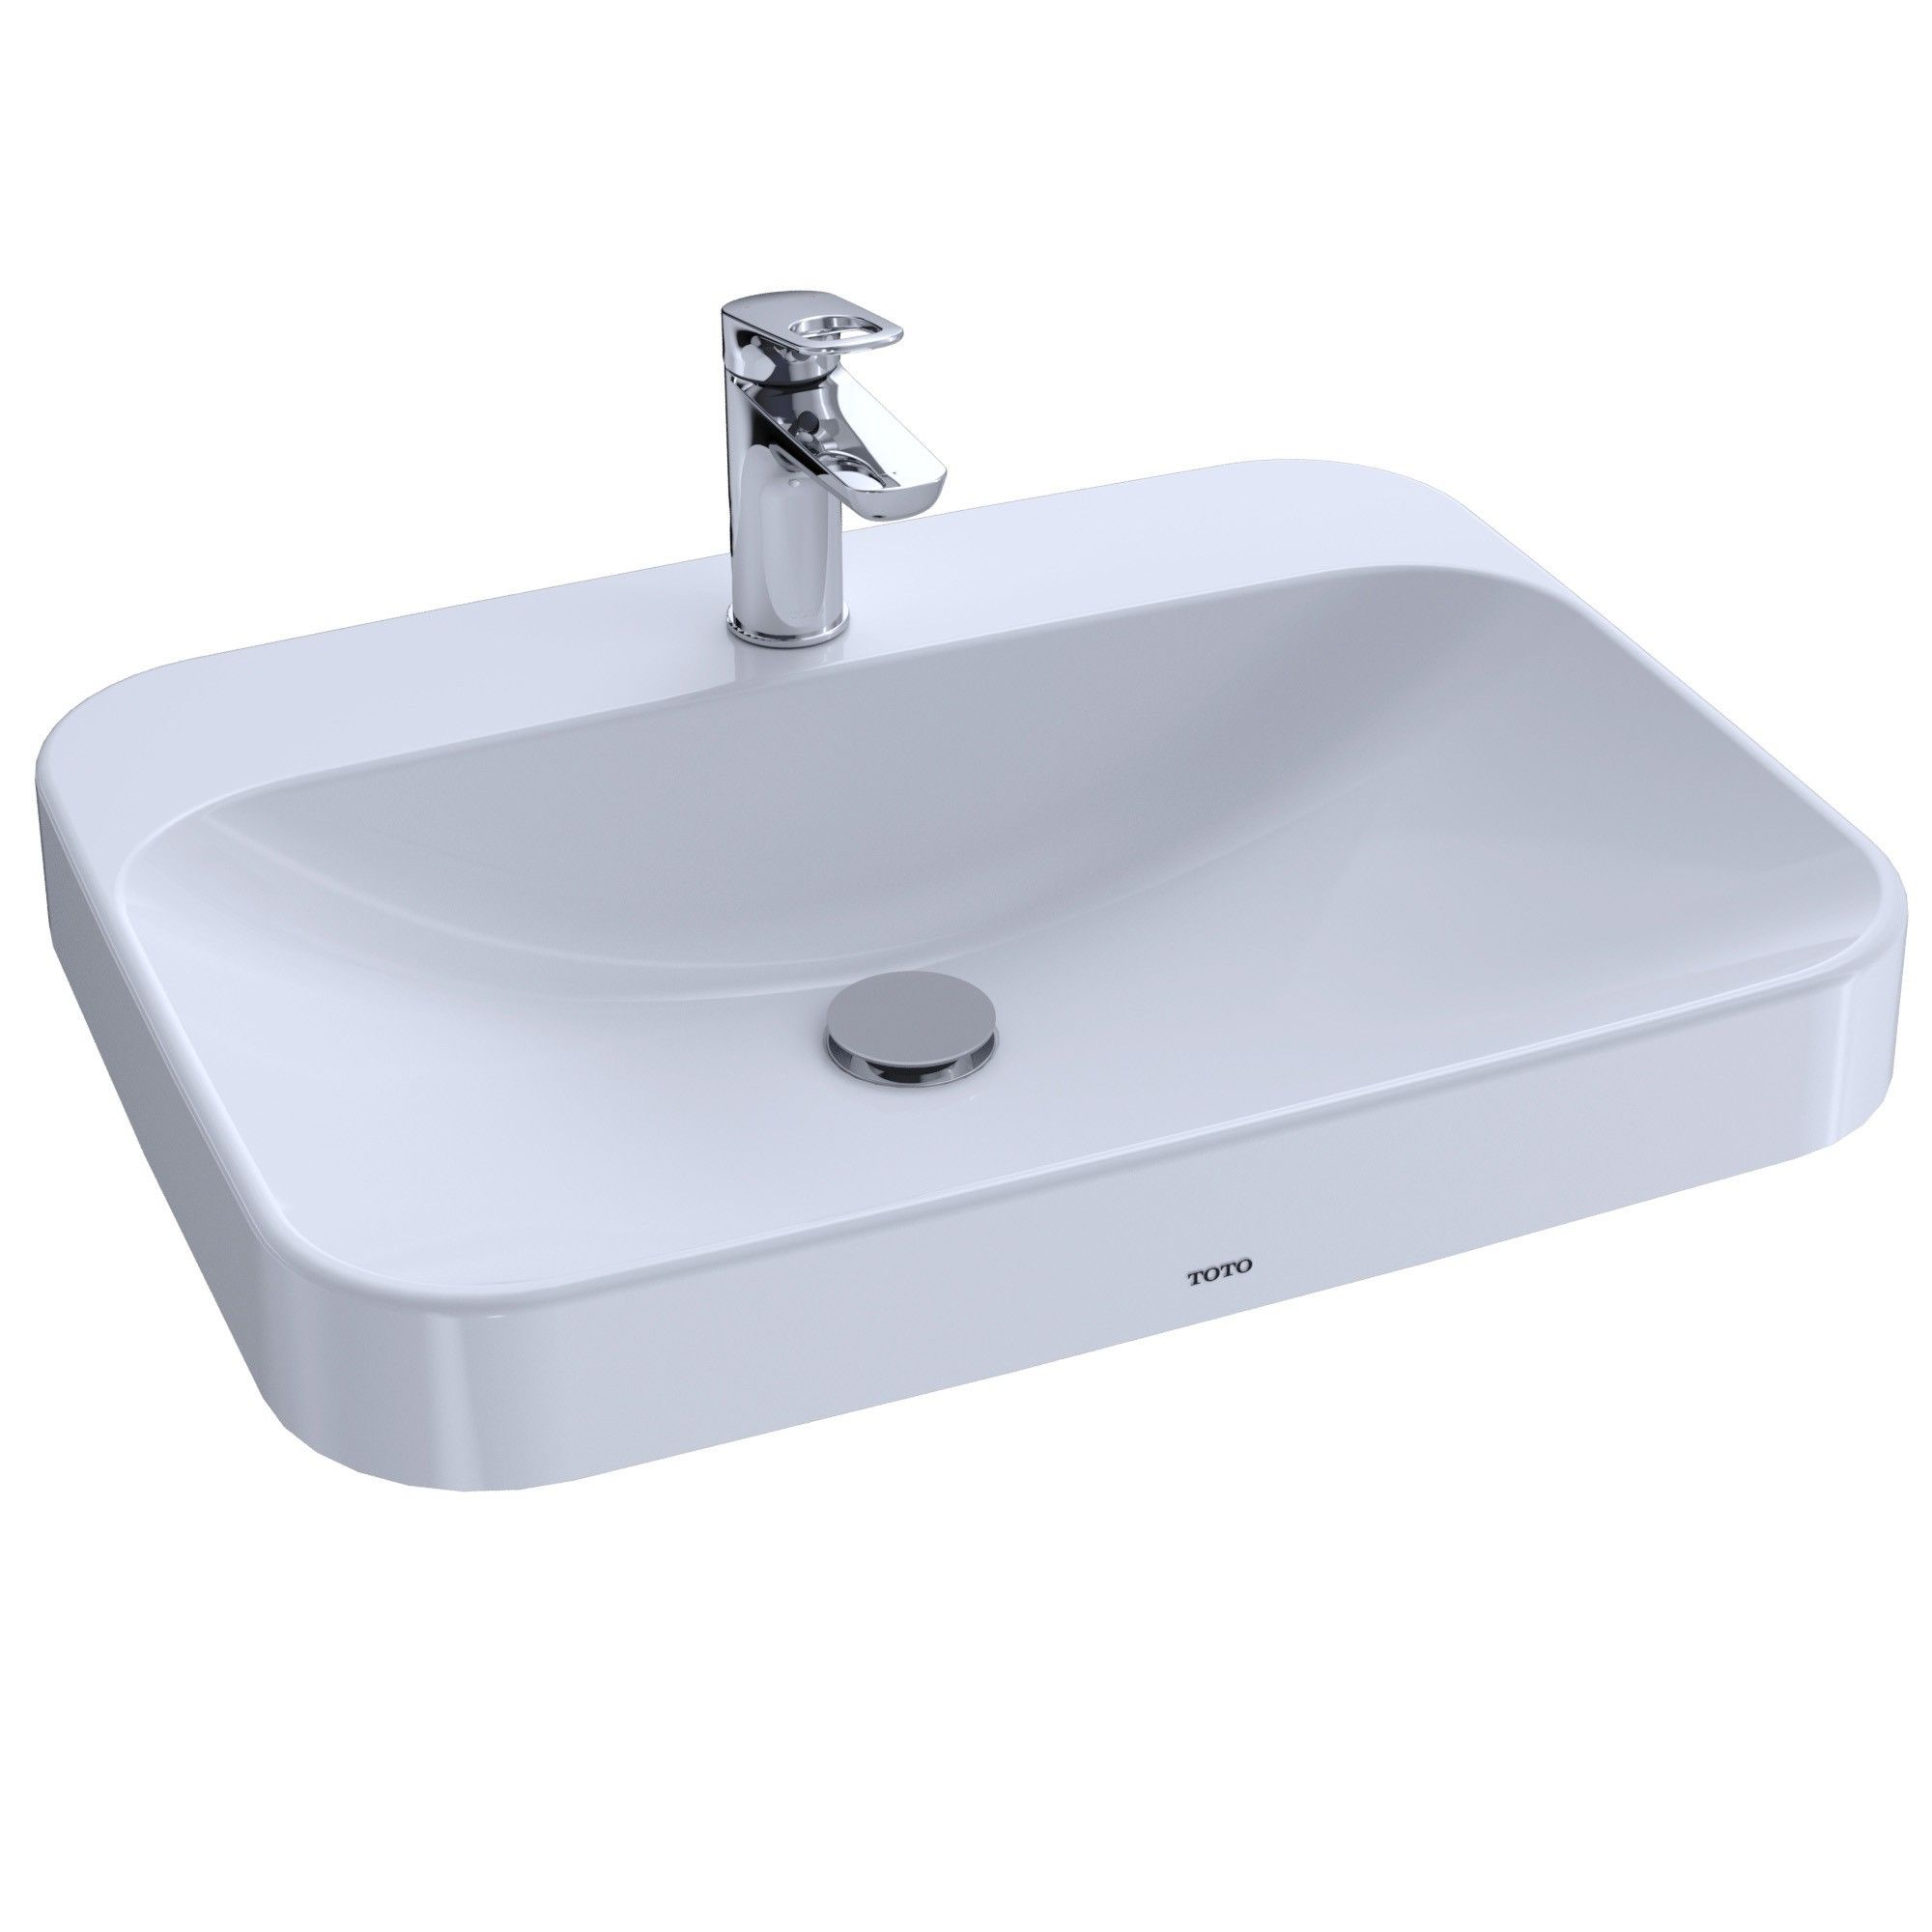 Toto Arvina Rectangular 23 Vessel Bathroom Sink With Cefiontect